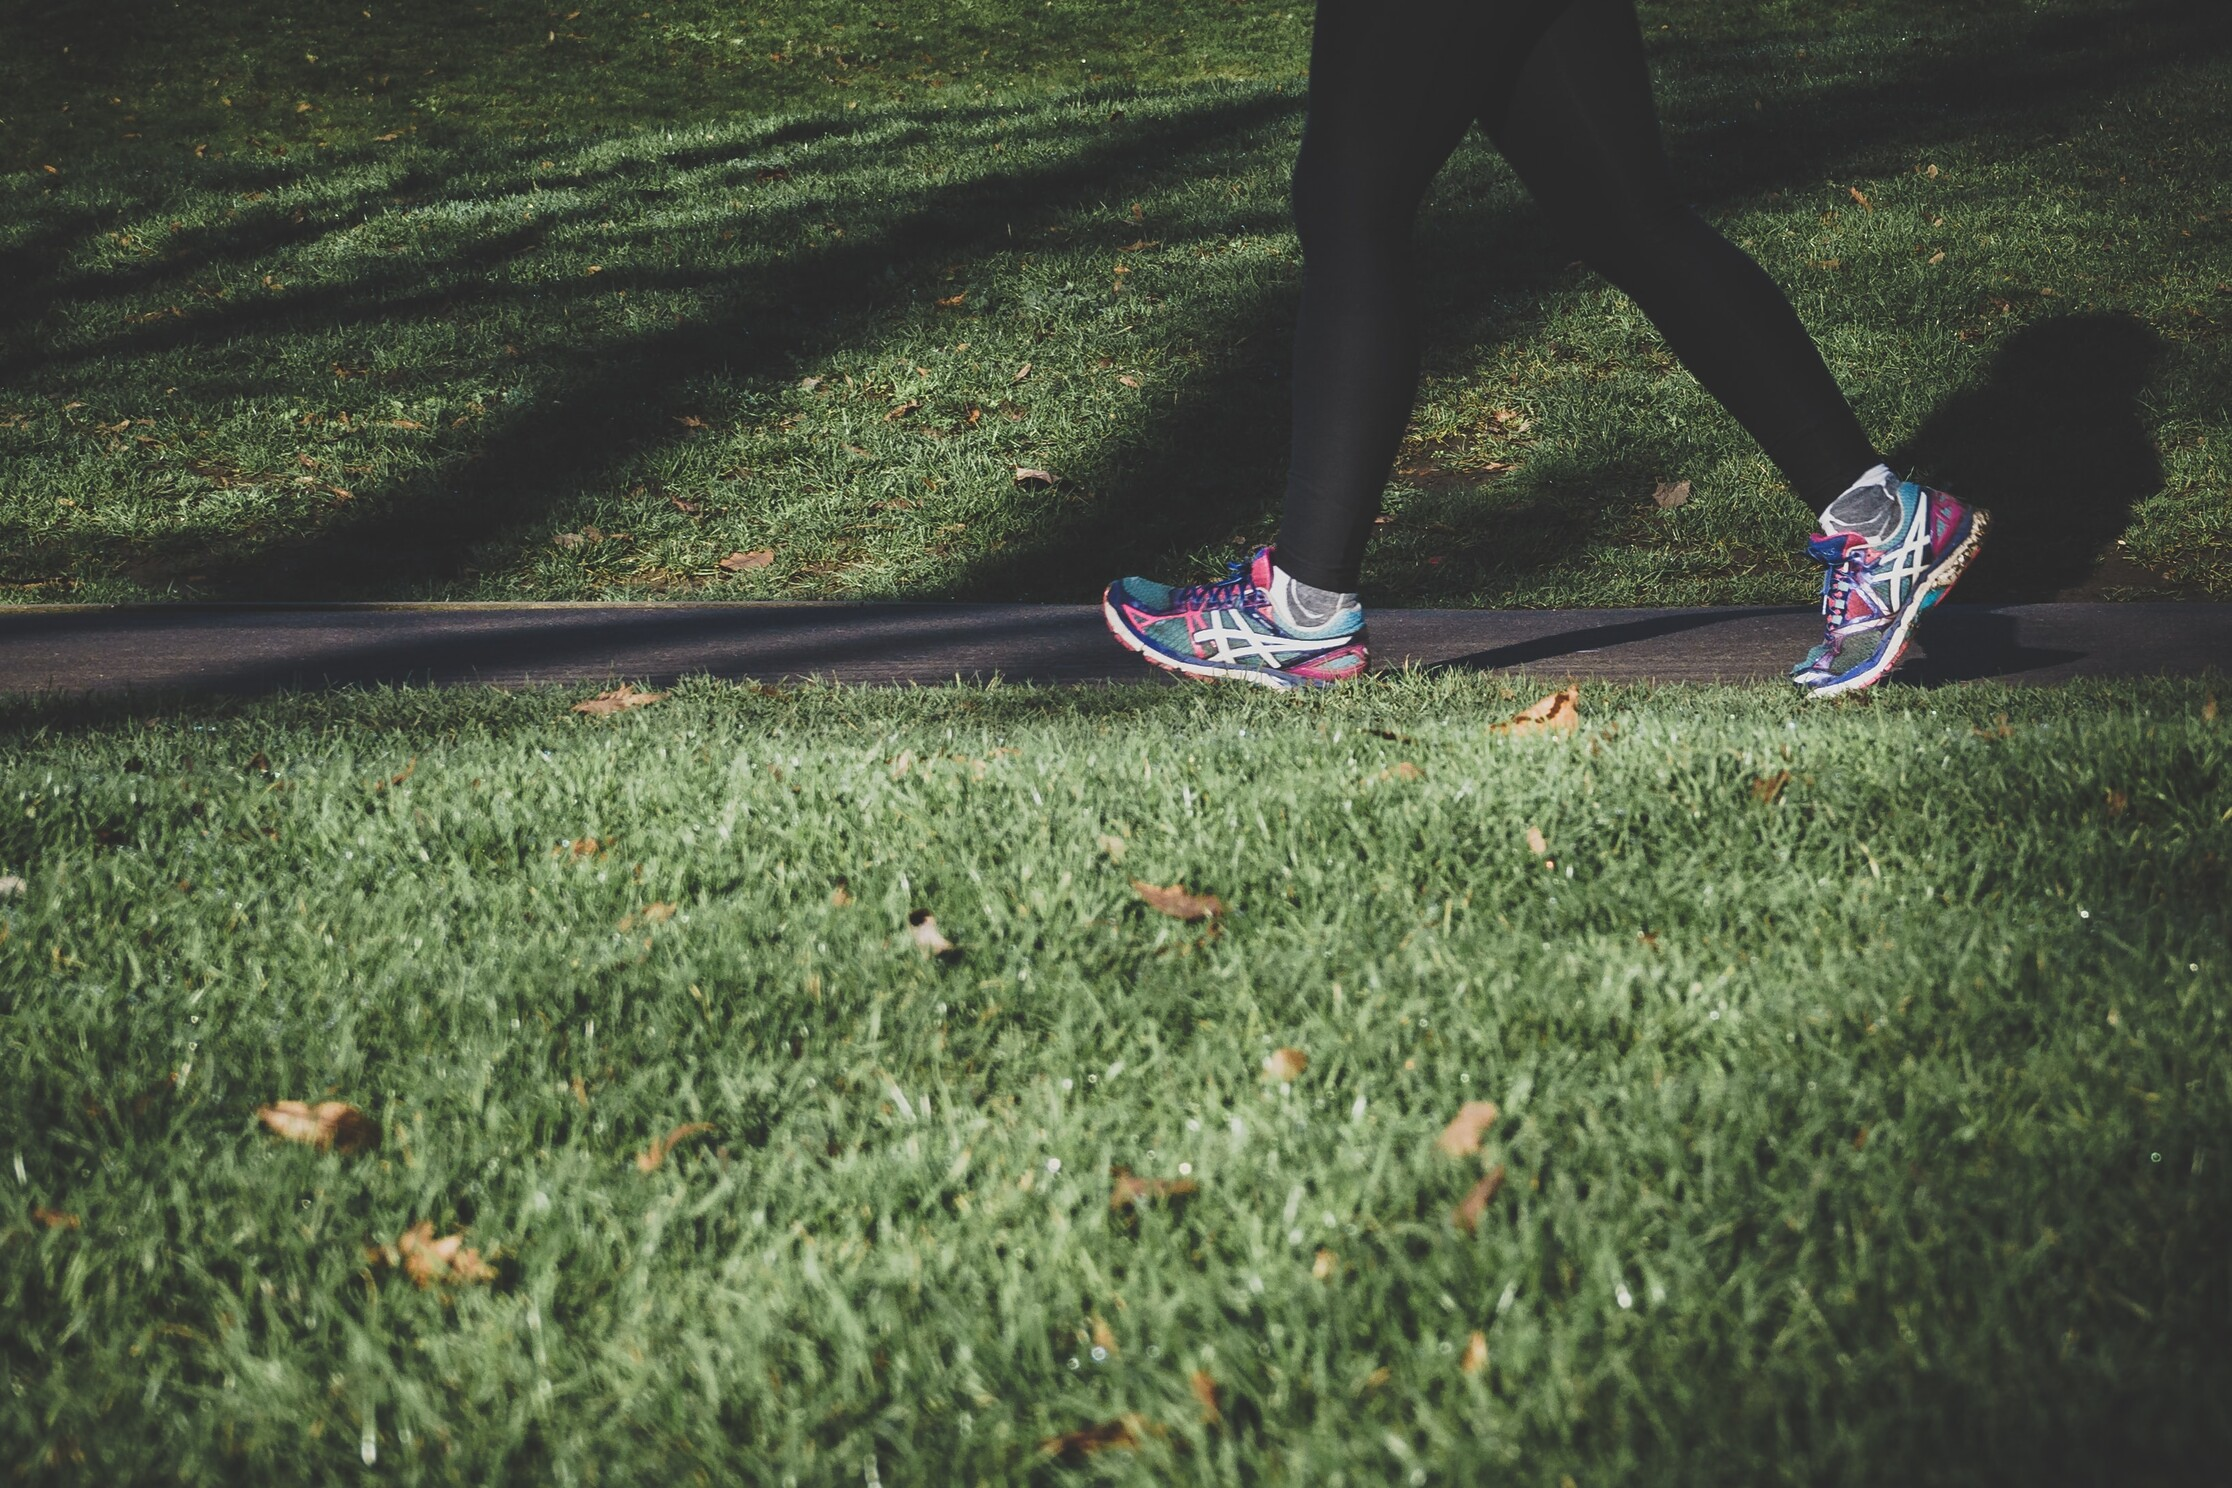 remote working running and / or exercising in order to promote remote workplace wellness and wellbeing